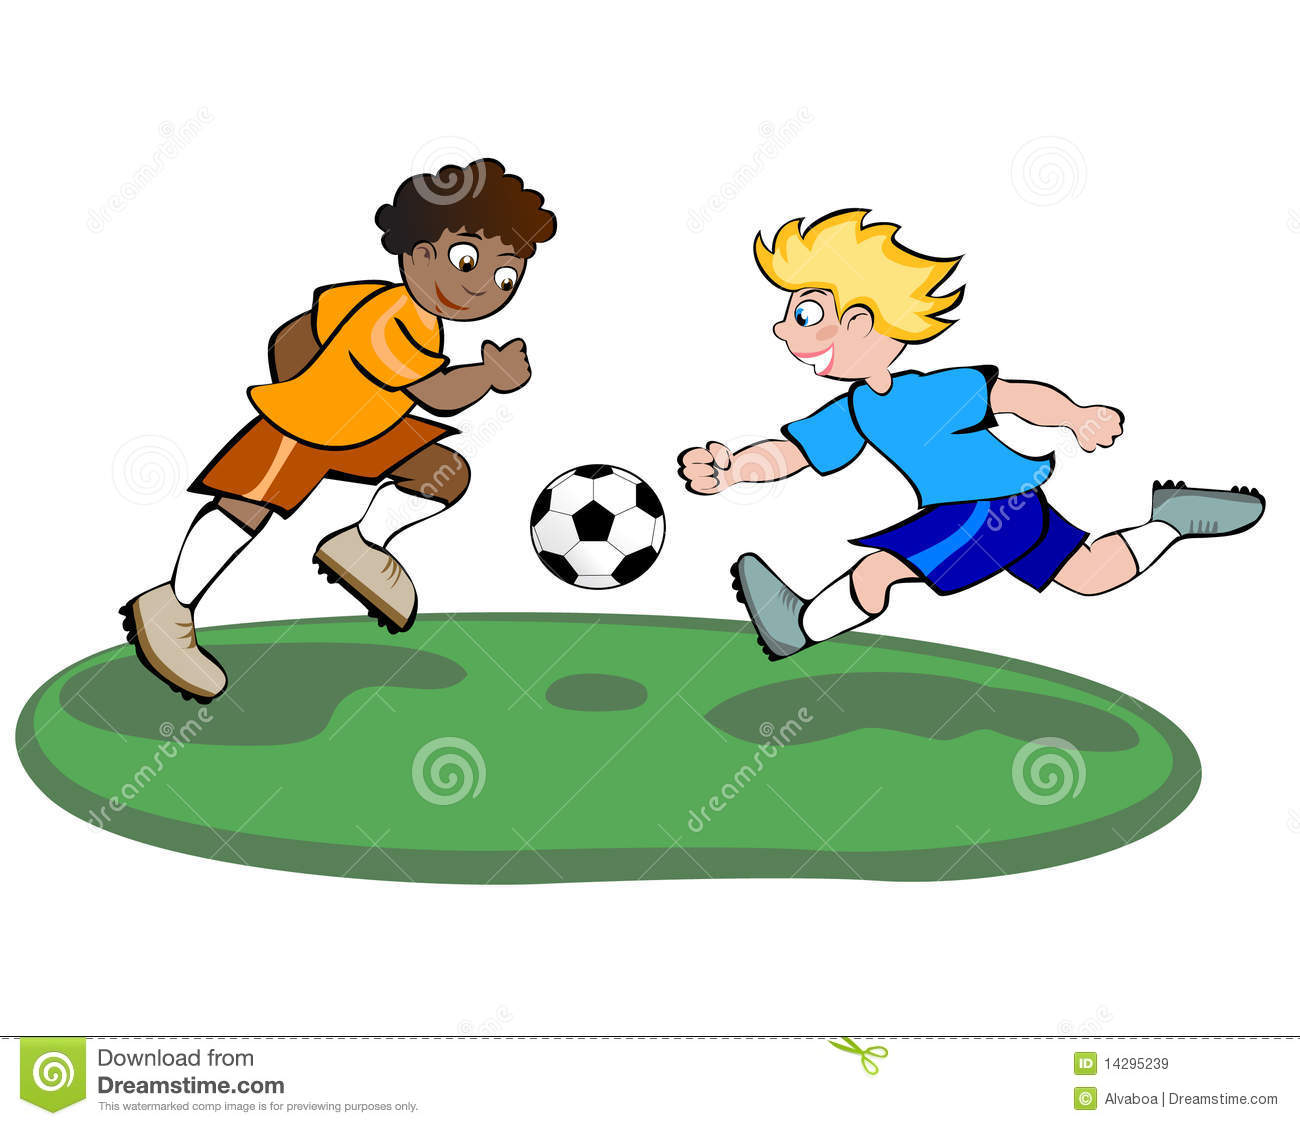 Games Clipart Football Game Picture 2738633 Games Clipart Football Game